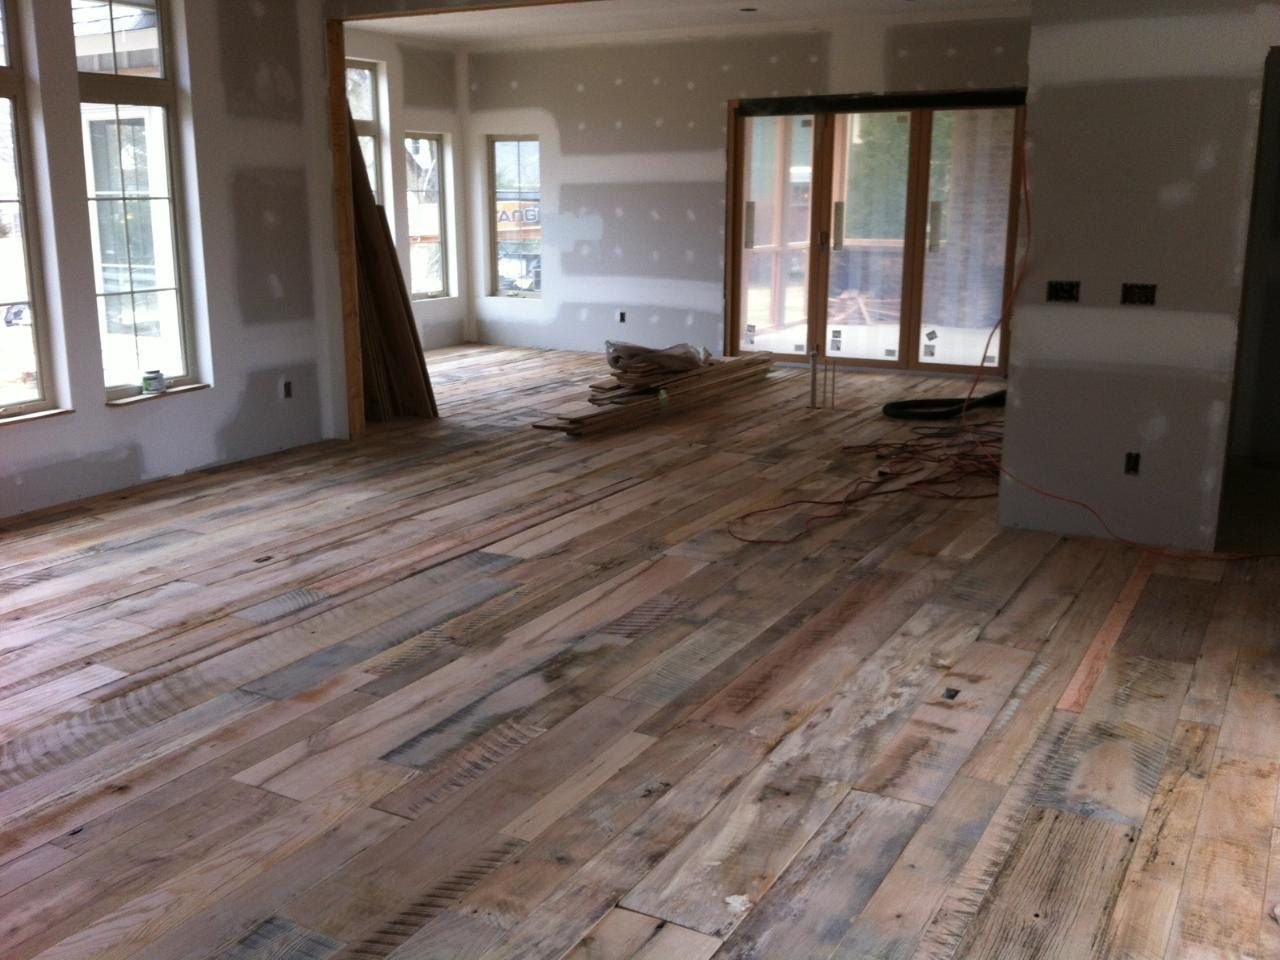 Authentic Pine Floors: Reclaimed Wood Compliments any ...   Recycled Wood Flooring Ideas